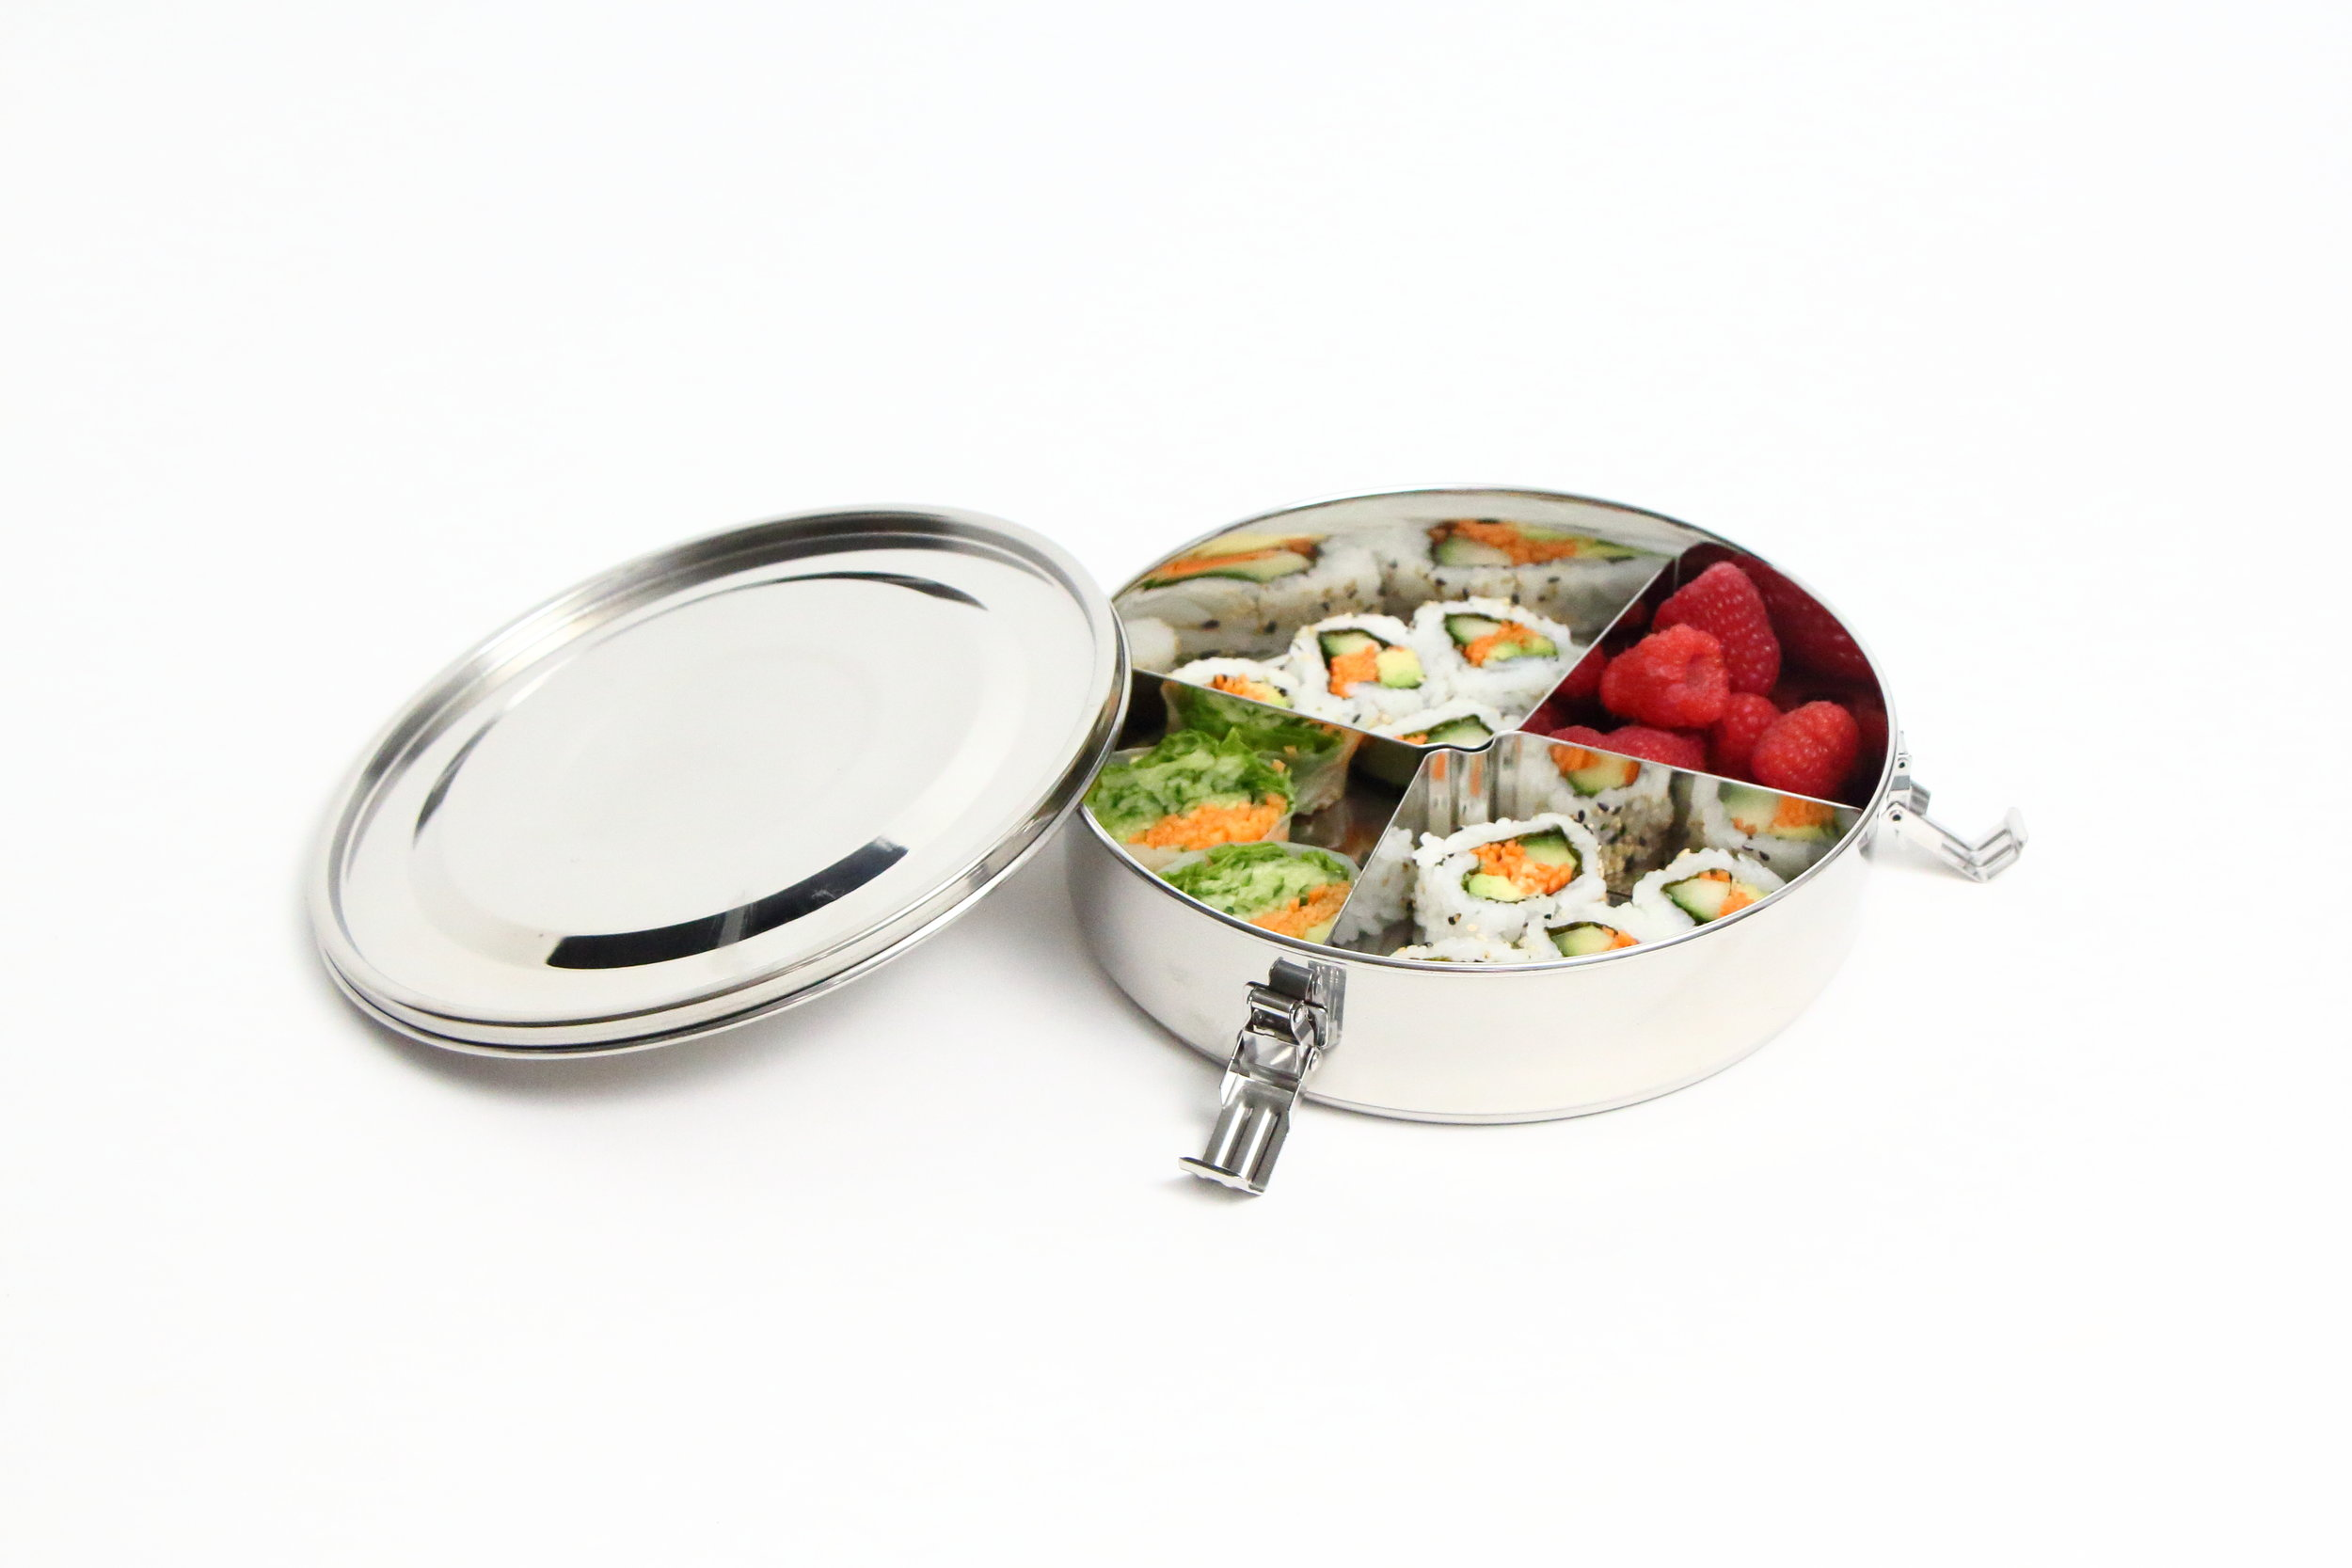 product - divided airtight food storage container.JPG